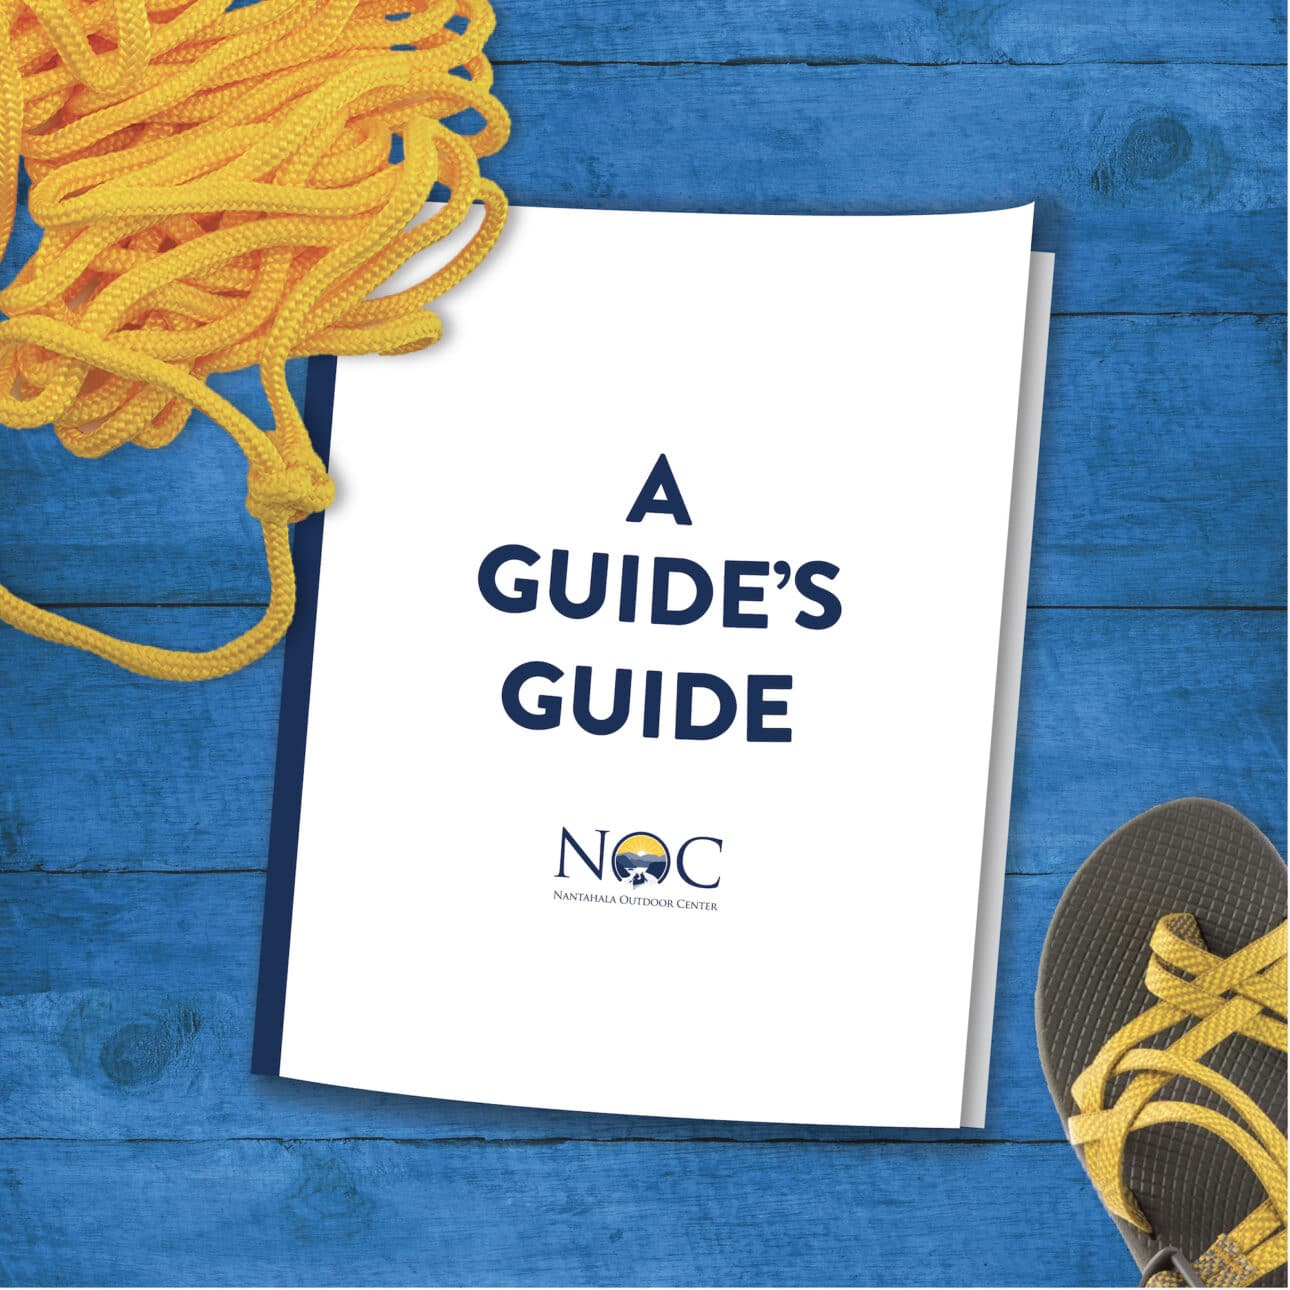 A Guide's Guide